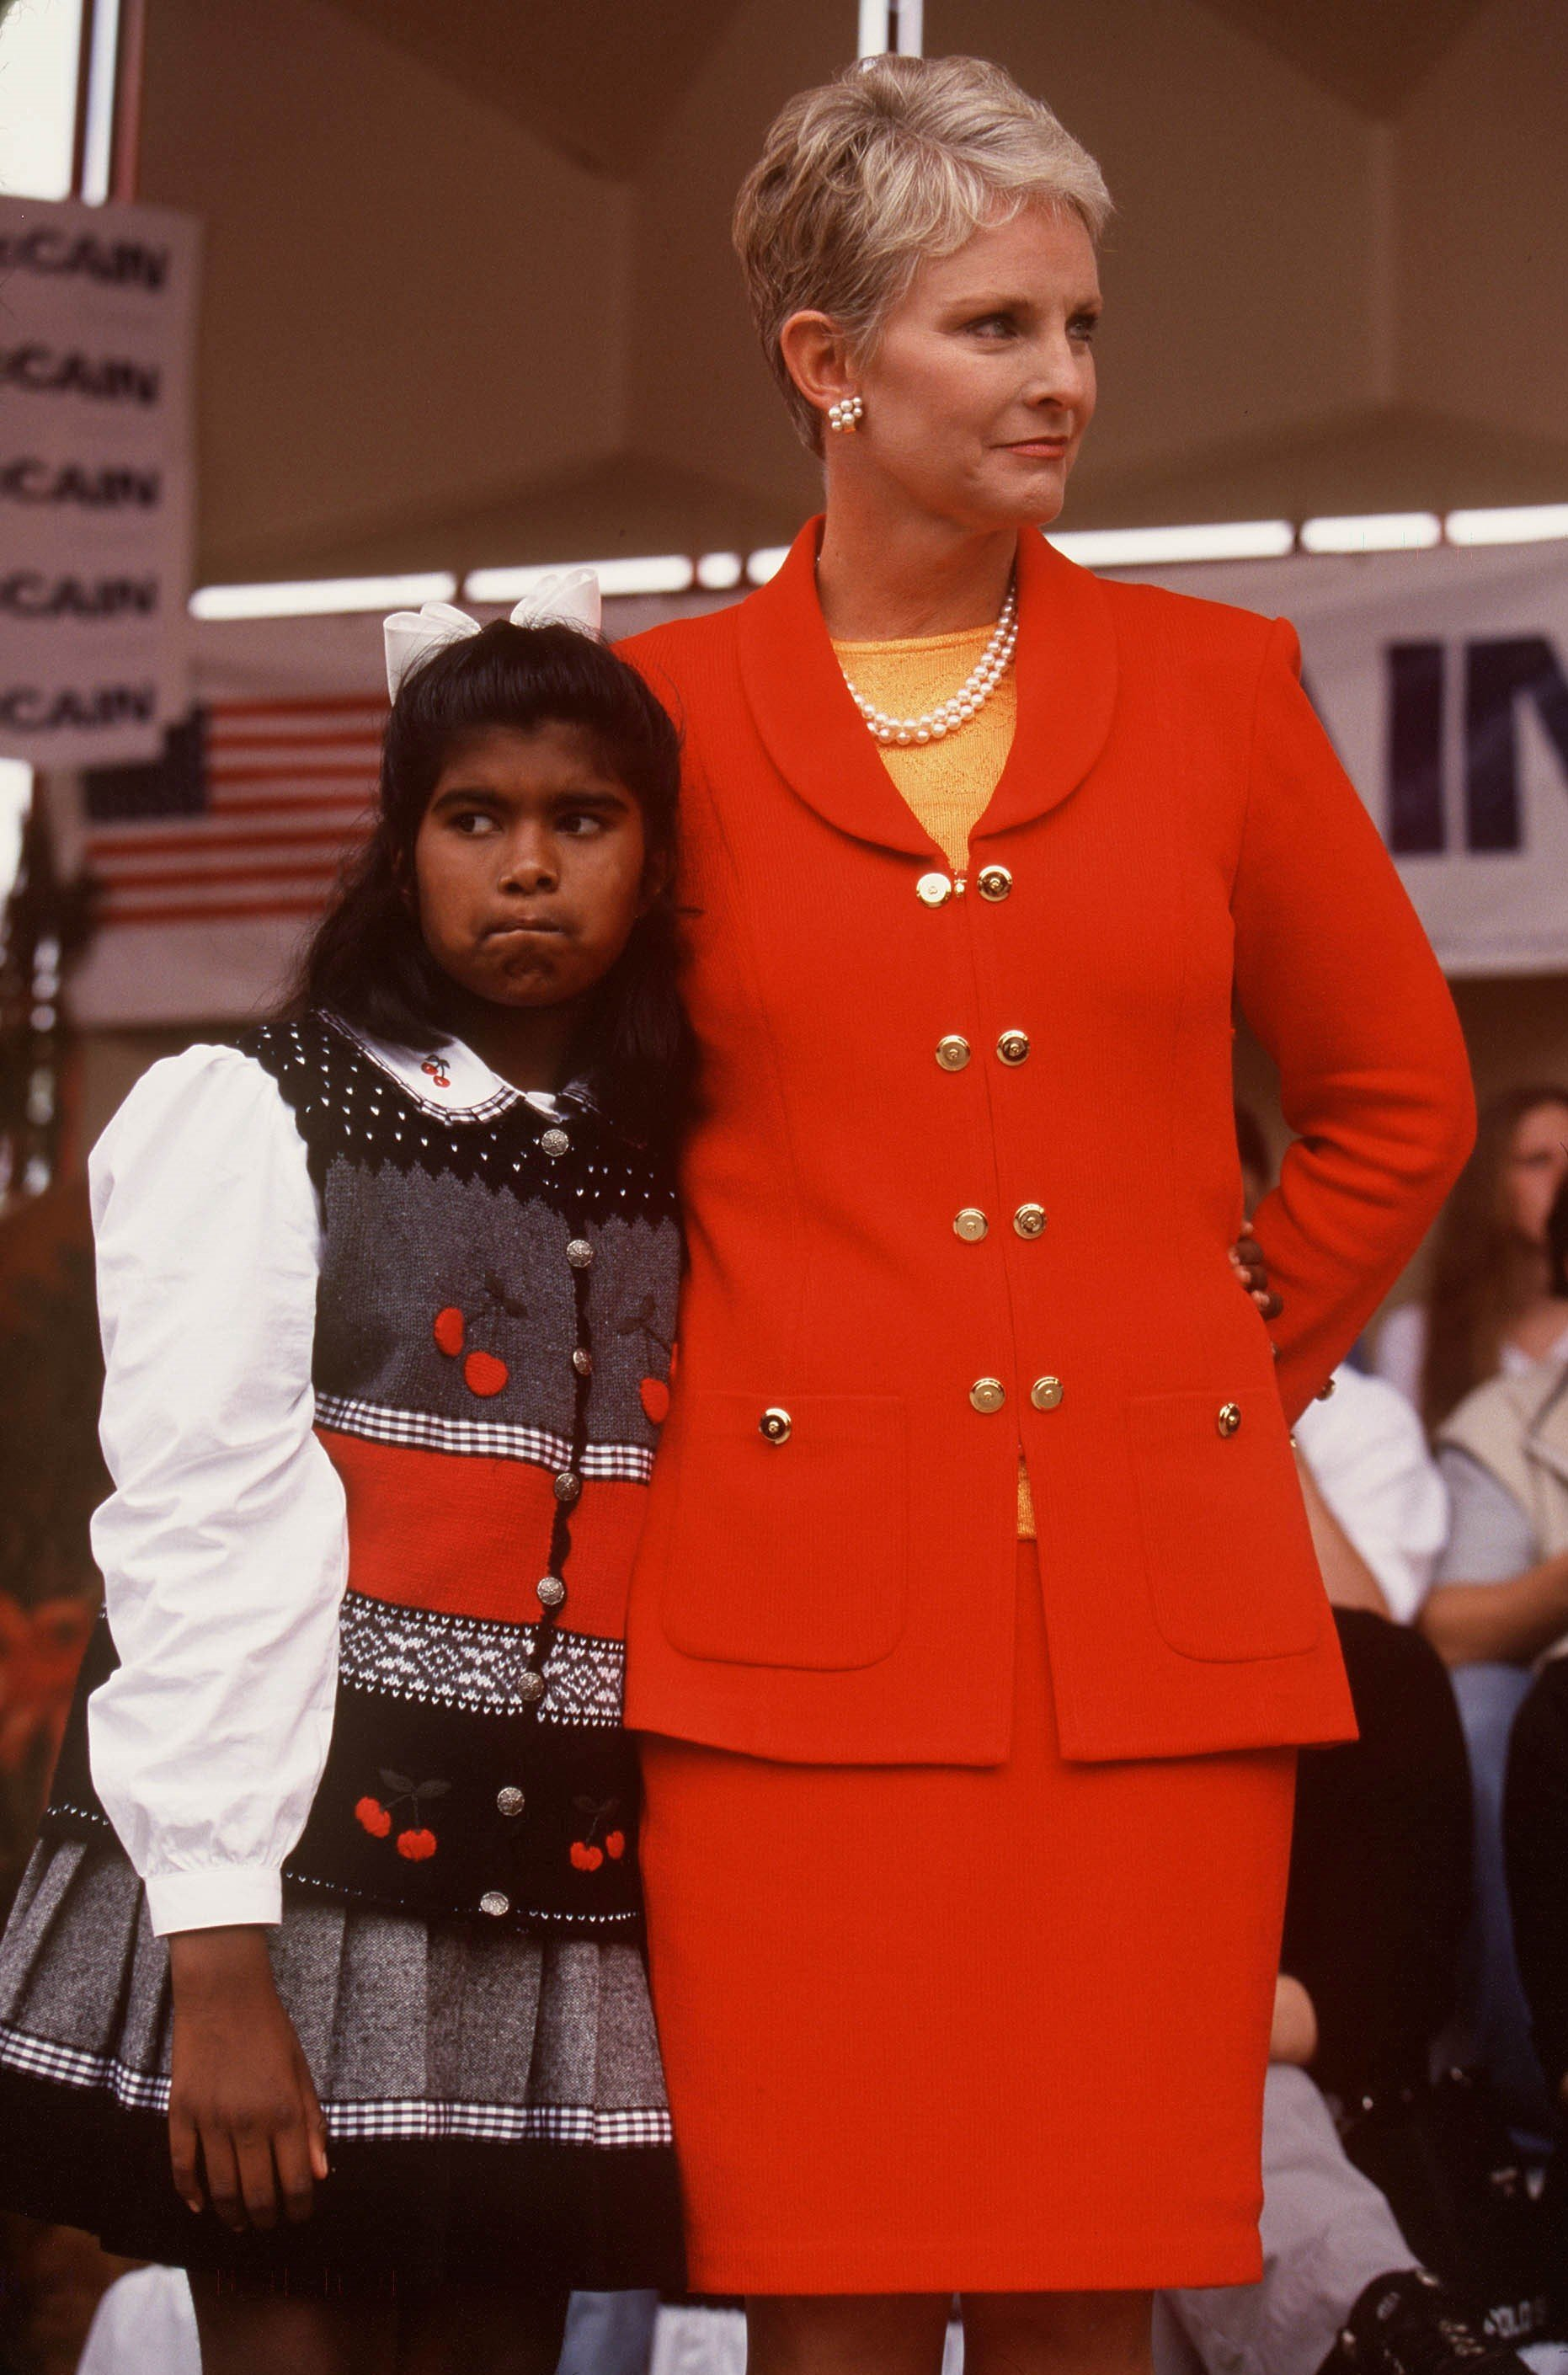 Cindy McCain and daughter Bridget on September 27, 1999 | Photo: GettyImages